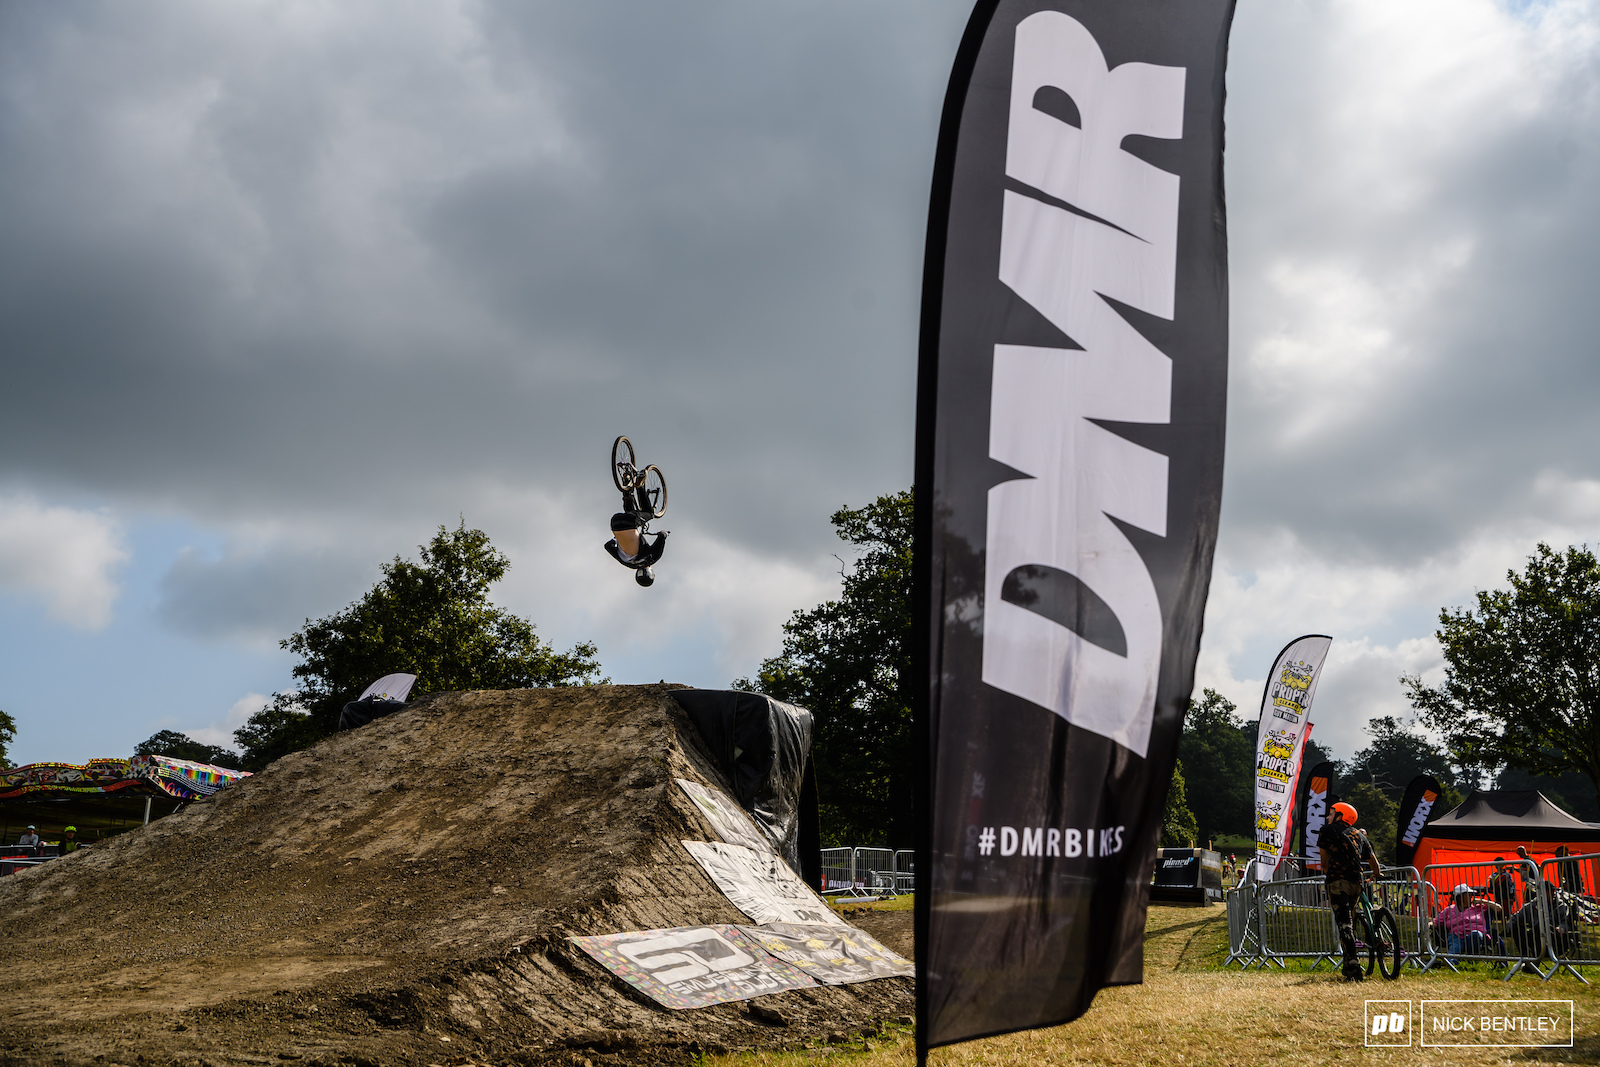 It s great to British Brand DMR supporting the DirtWars series once again. Without brands supporting these events they just simply wouldn t happen